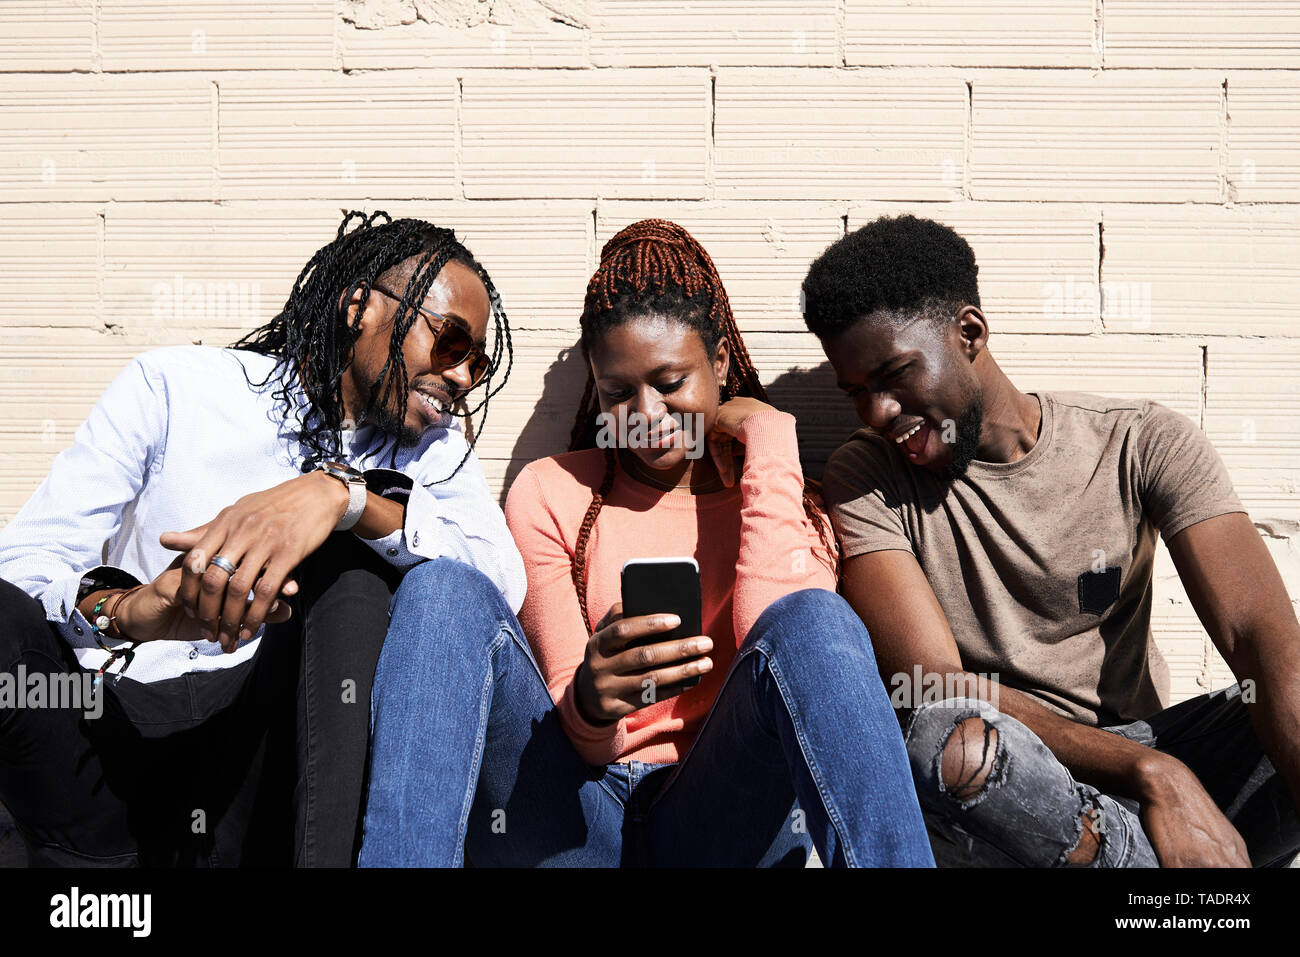 Three friends sitting together and watching a video on a smartphone outdoors - Stock Image